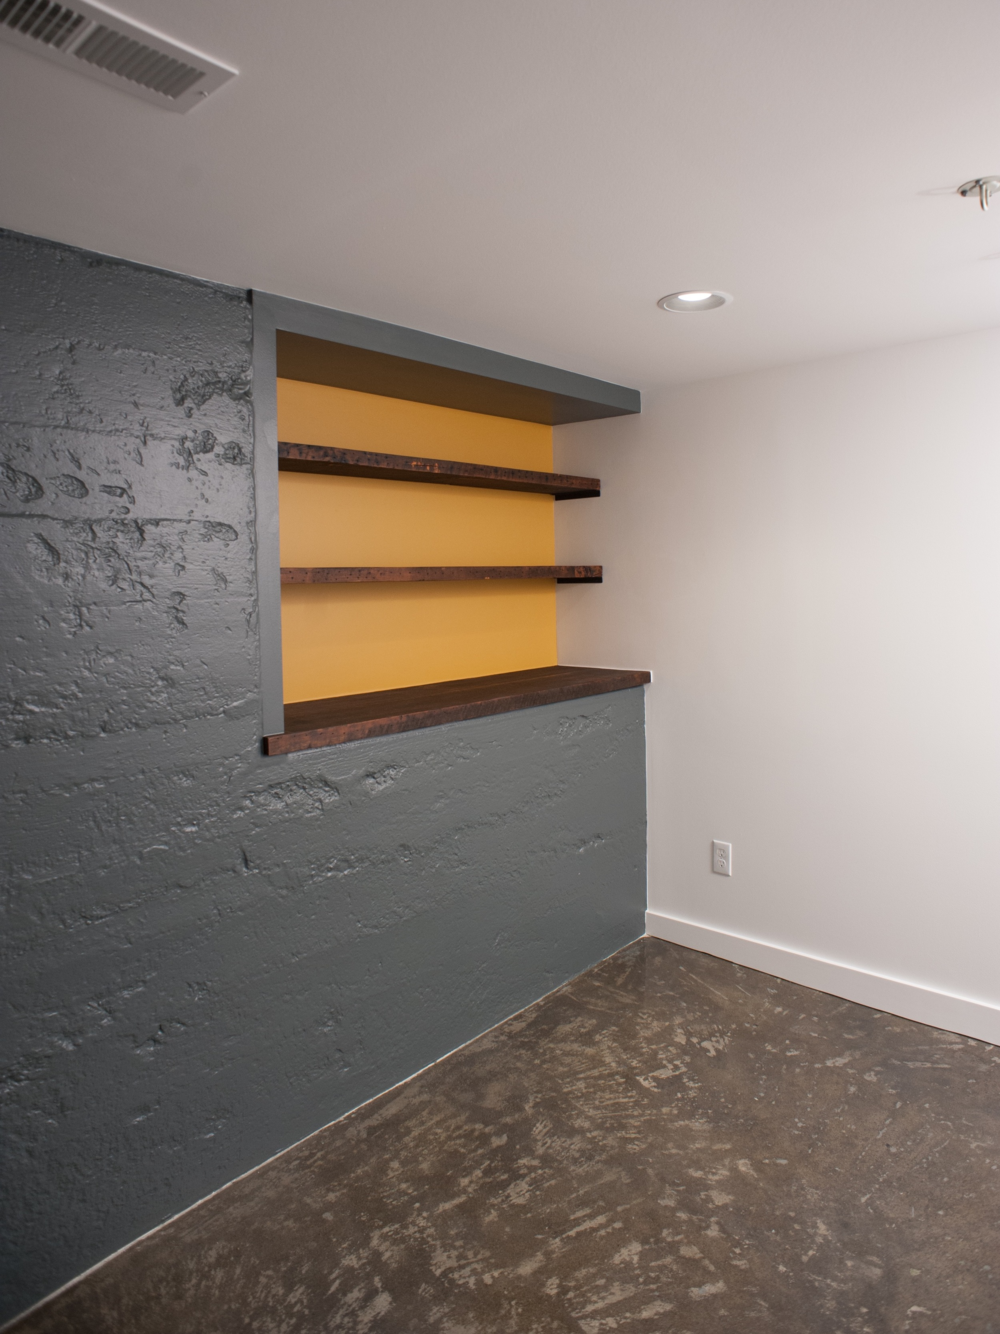 AFTER: Main room is now a living space with all new finishes, utility lines tucked away out of view, and a feature wall of painted concrete with a warm shelving nook. A separate laundry area was created in a previously unfinished part of the basement (not pictured).